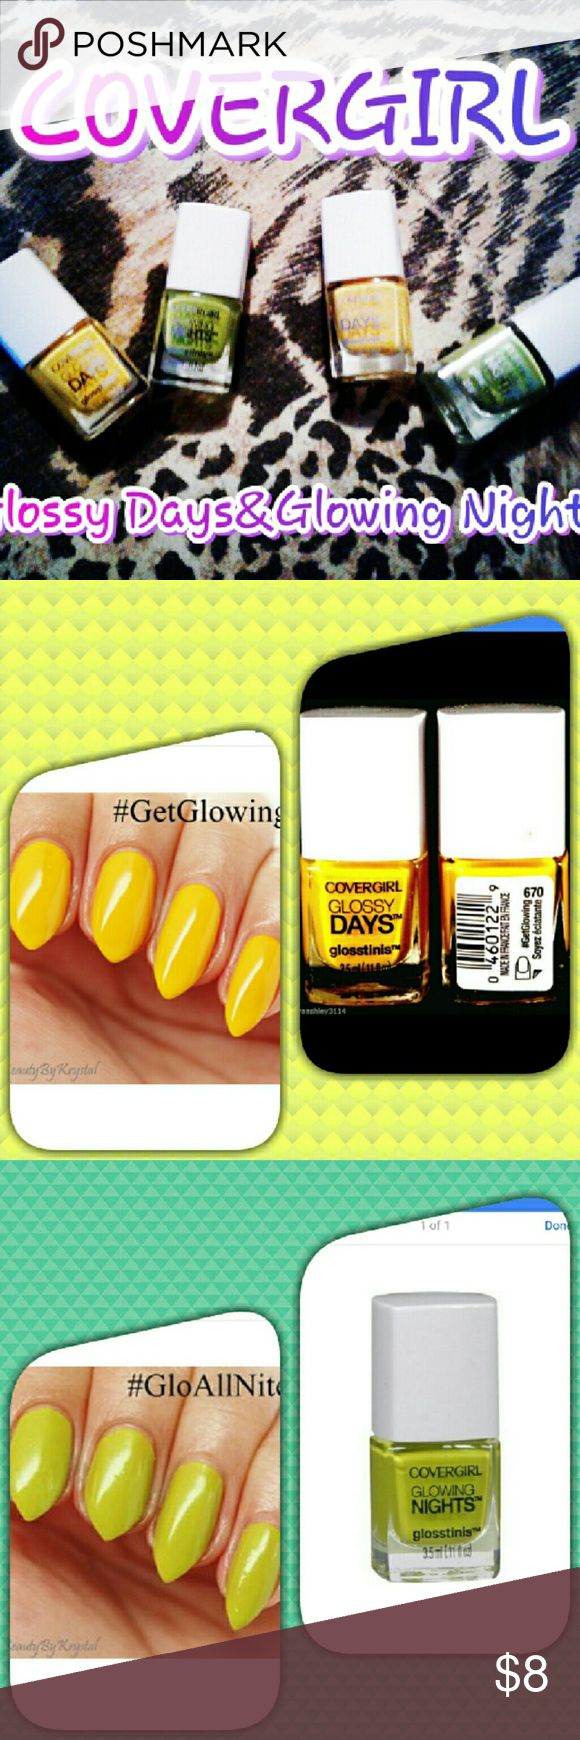 """New Covergirl Nail Polish Sets Covergirl glosstinis glossy days/glowing nights beautiful nail color. Set comes with one """"get glowing"""" (yellow) and one """"glo all night"""" (green). New never opened. Retails up to $7 per bottle. 2 set available at $9.00 a pair.  3.5mL bottles CoverGirl  Makeup"""